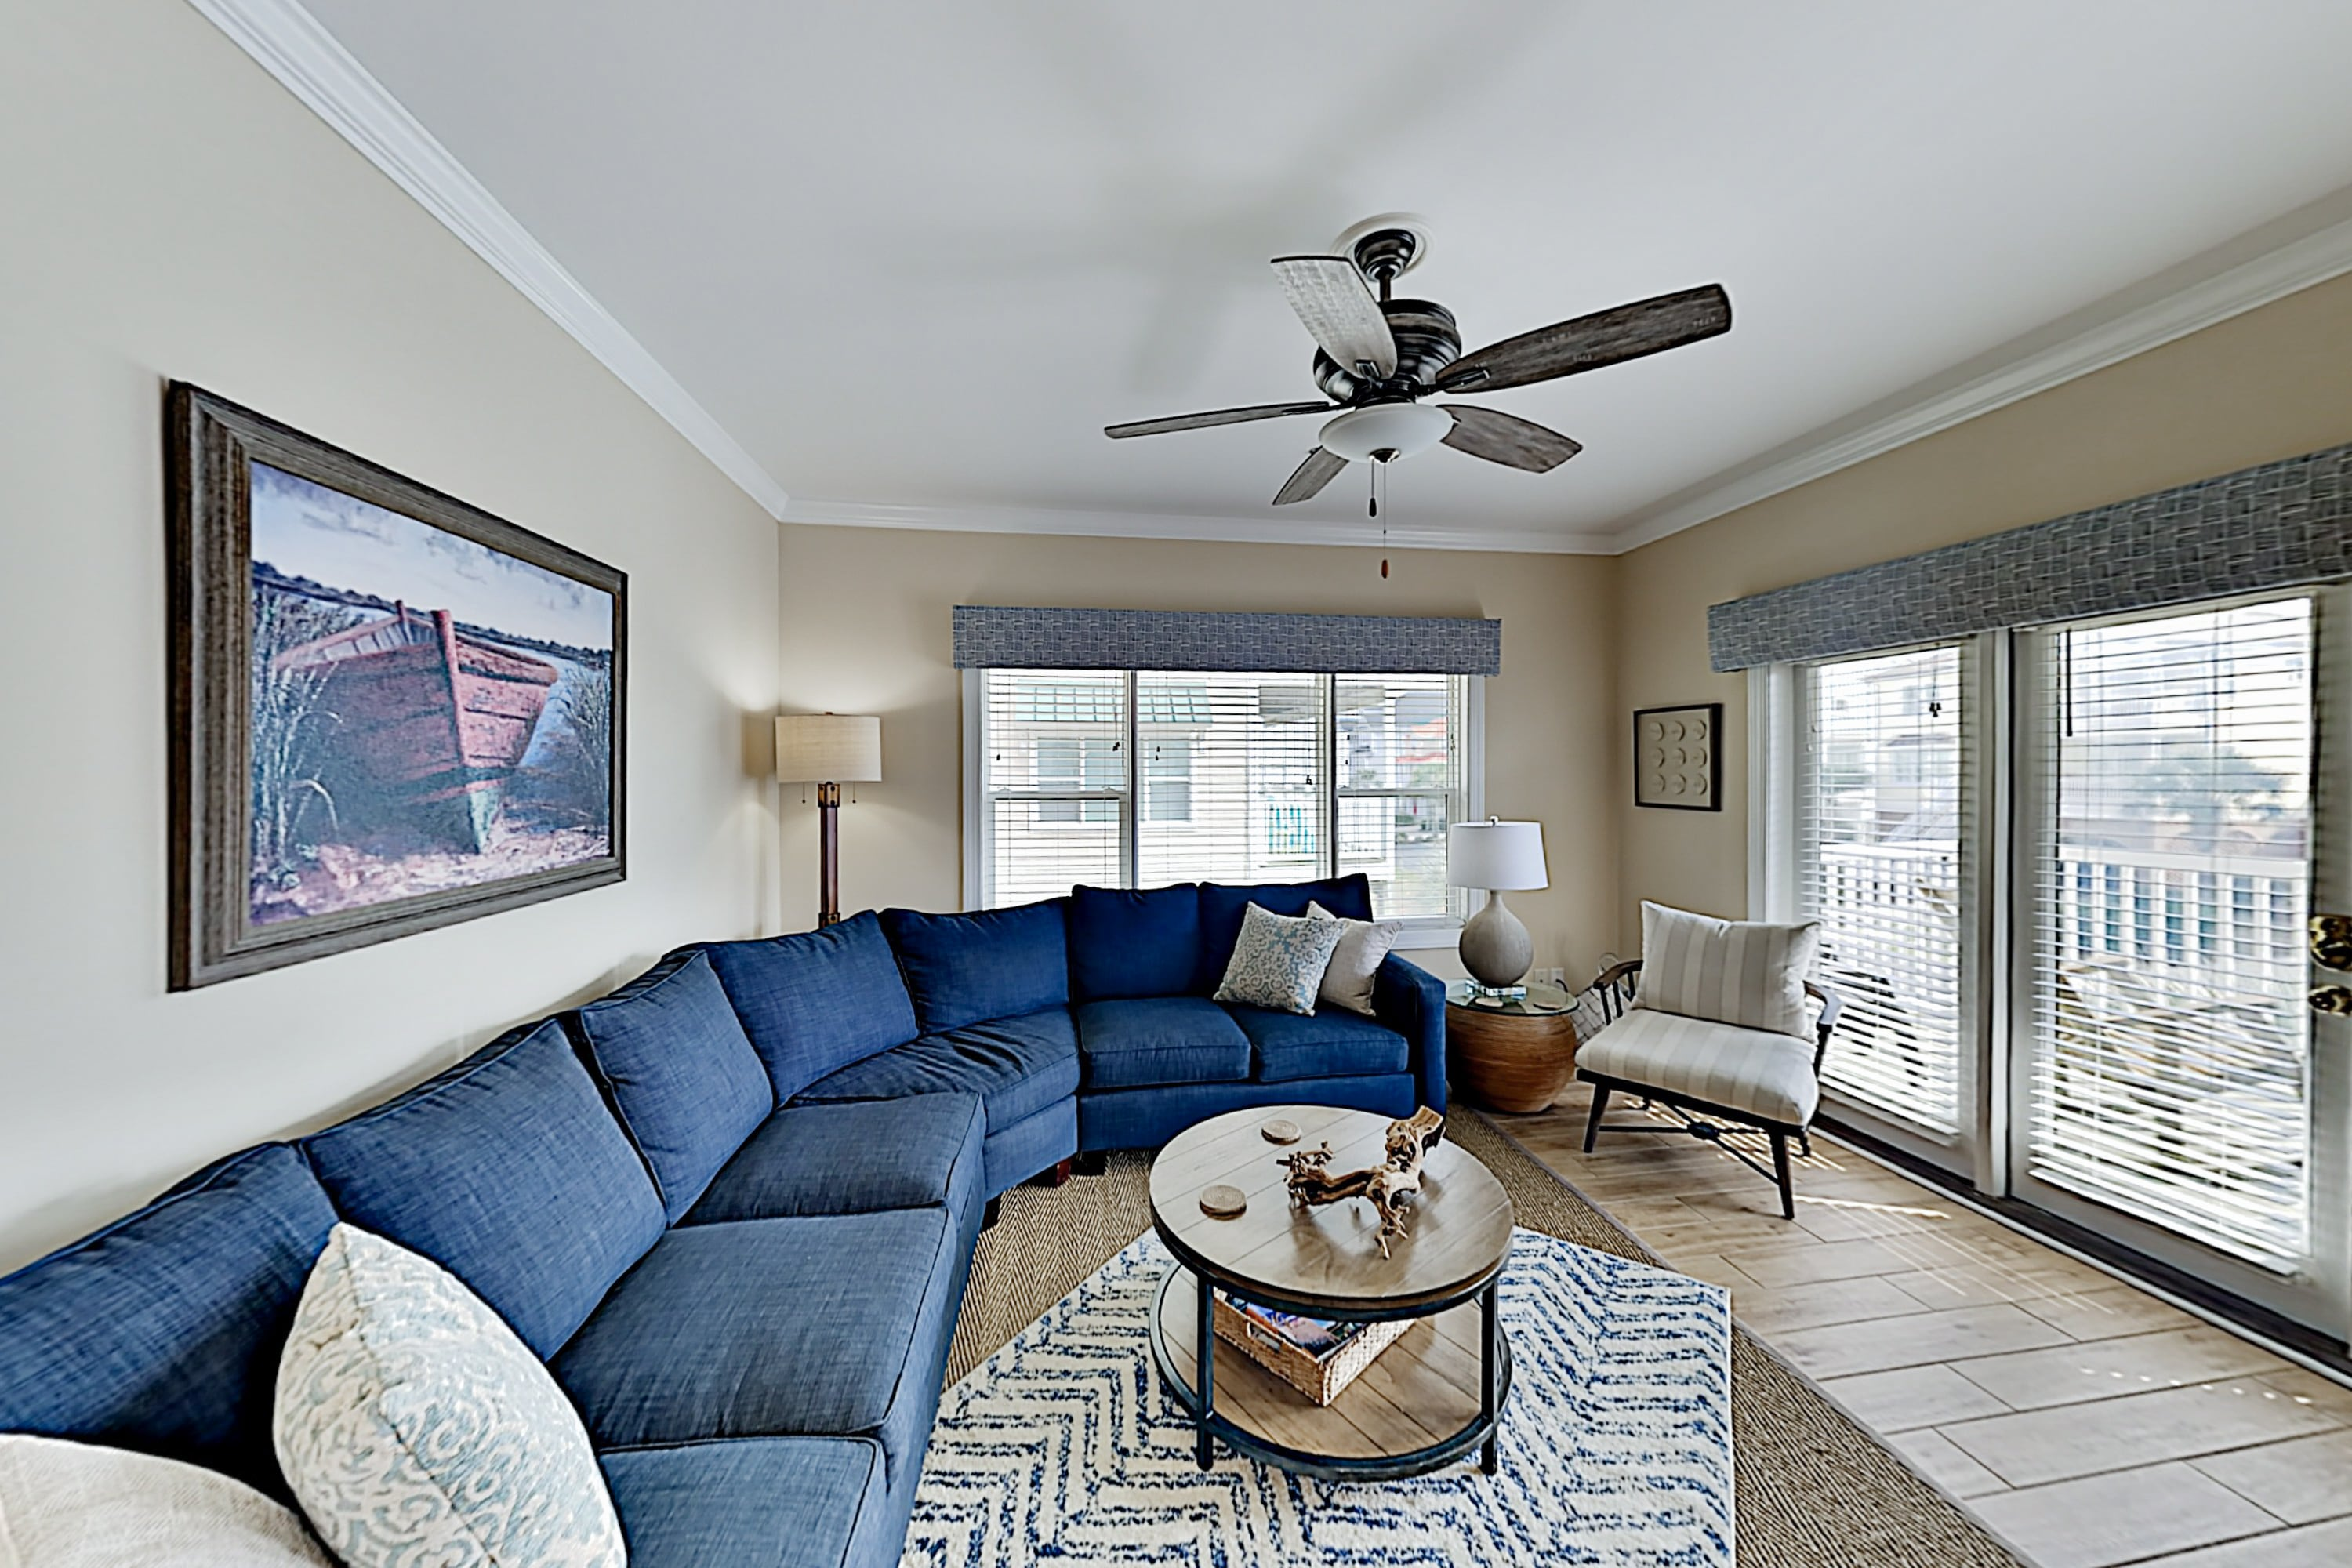 Welcome to Ocean Isle Beach! This condo is professionally managed by TurnKey Vacation Rentals.